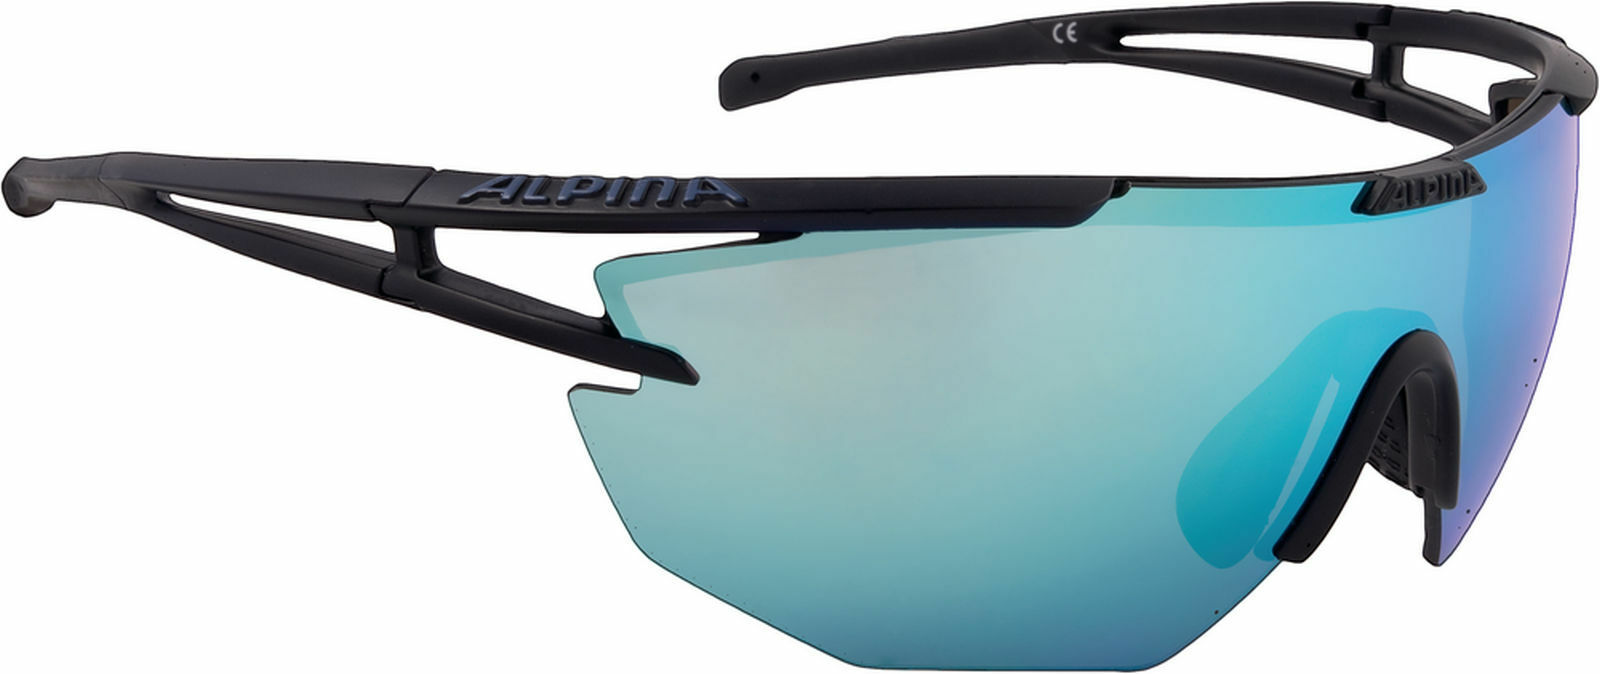 Alpina Sportbrille ALPINA EYE-5 Shield Ceramic mirror black